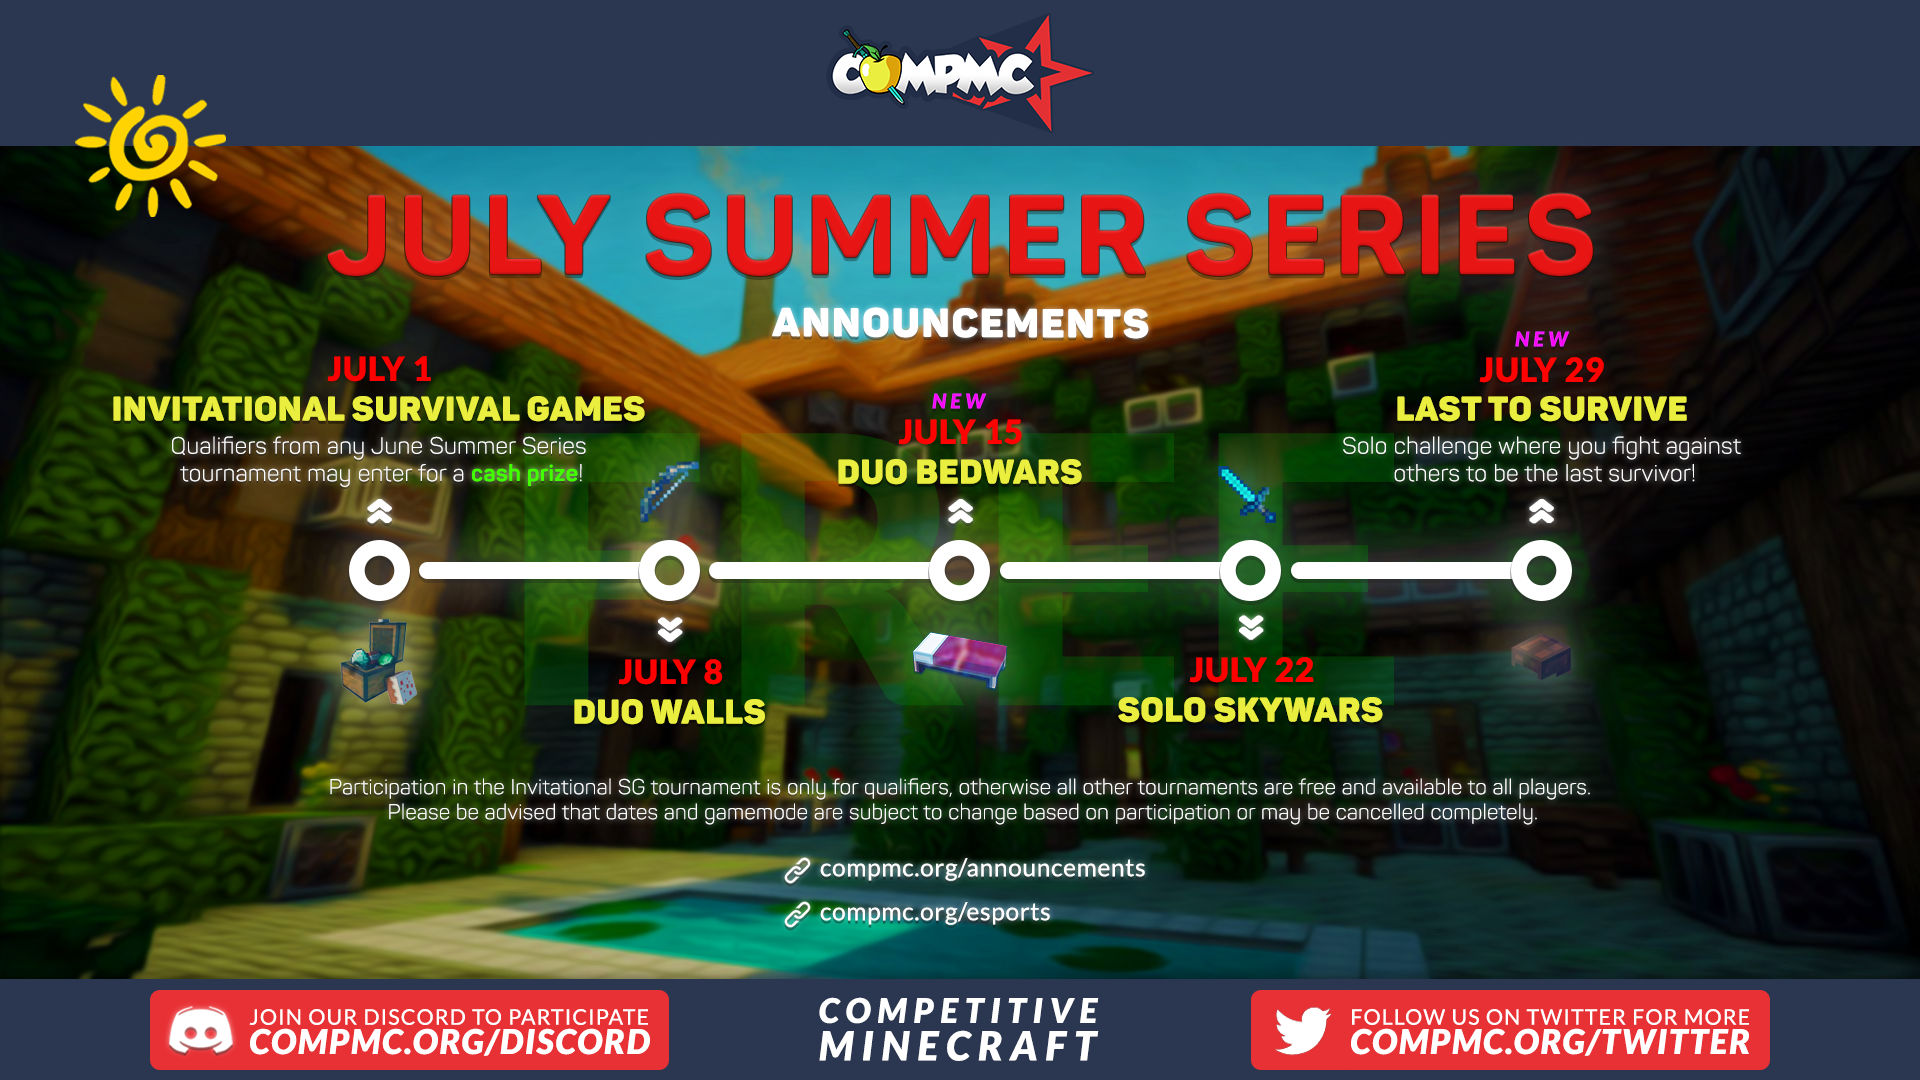 Summer Series: Duo Bedwars Cover Image